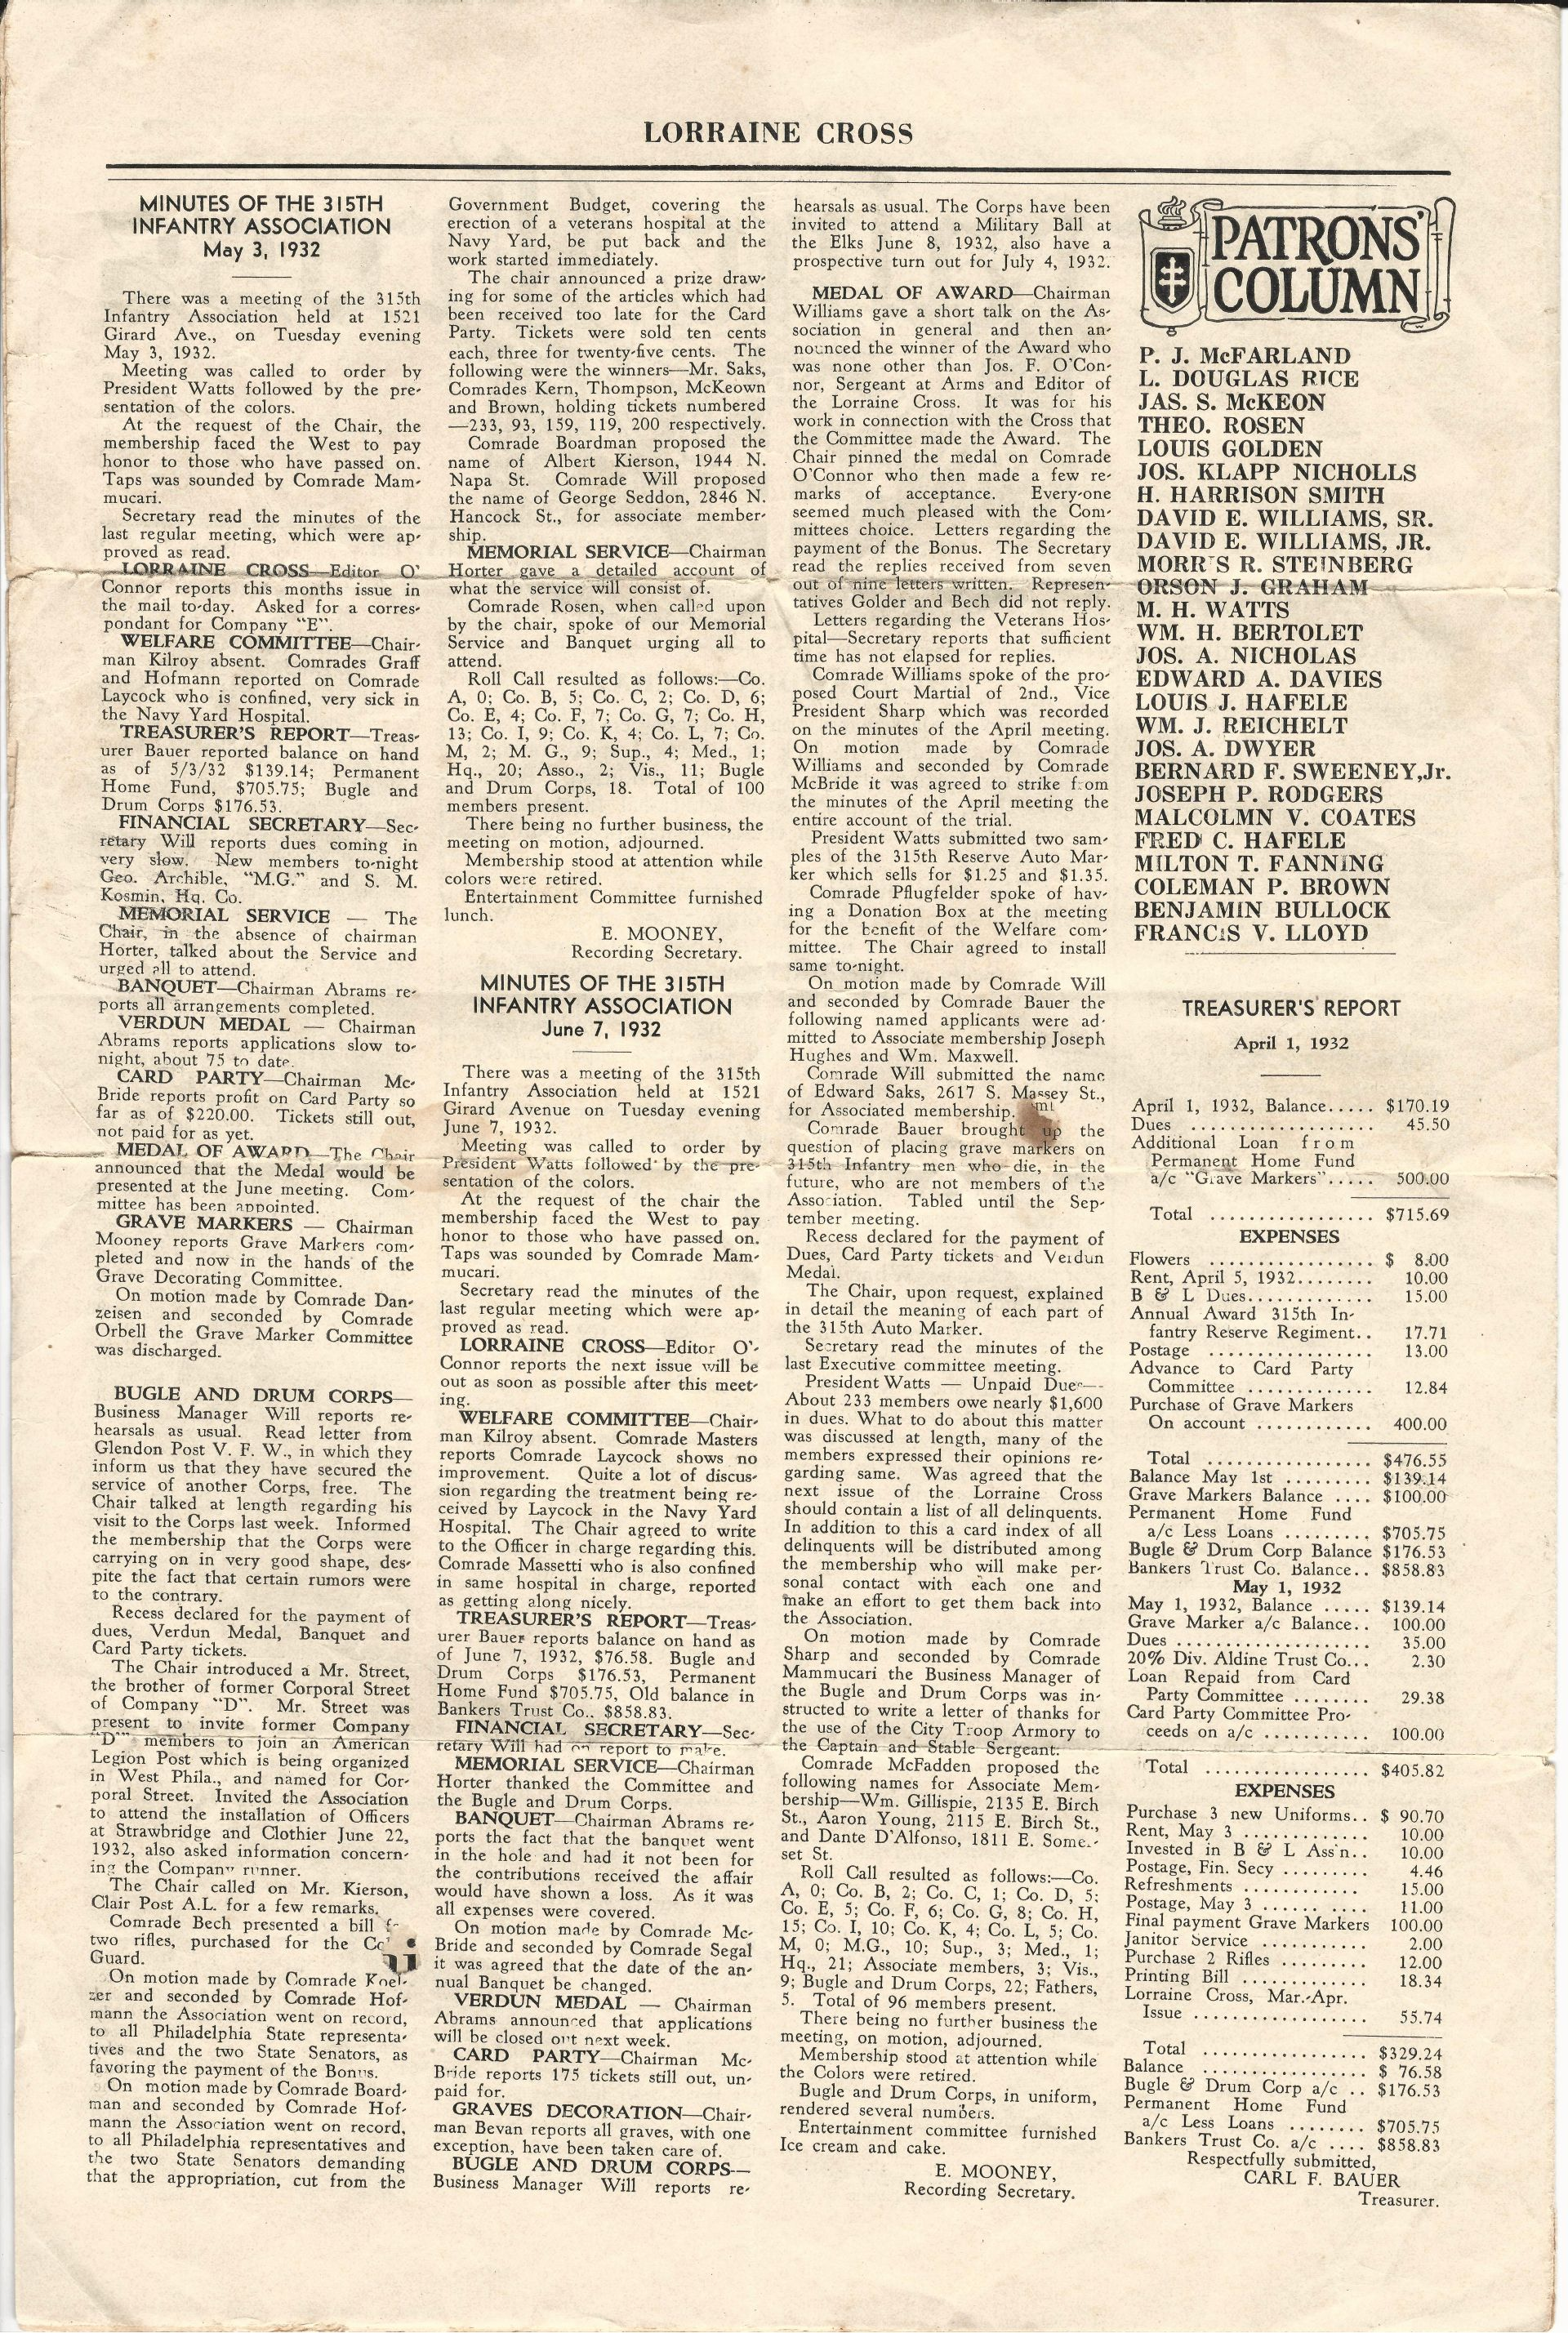 Lorraine Cross newsletter of the 315th Infantry Association (Philadelphia Pennsylvania) May-June 1932 - page 2